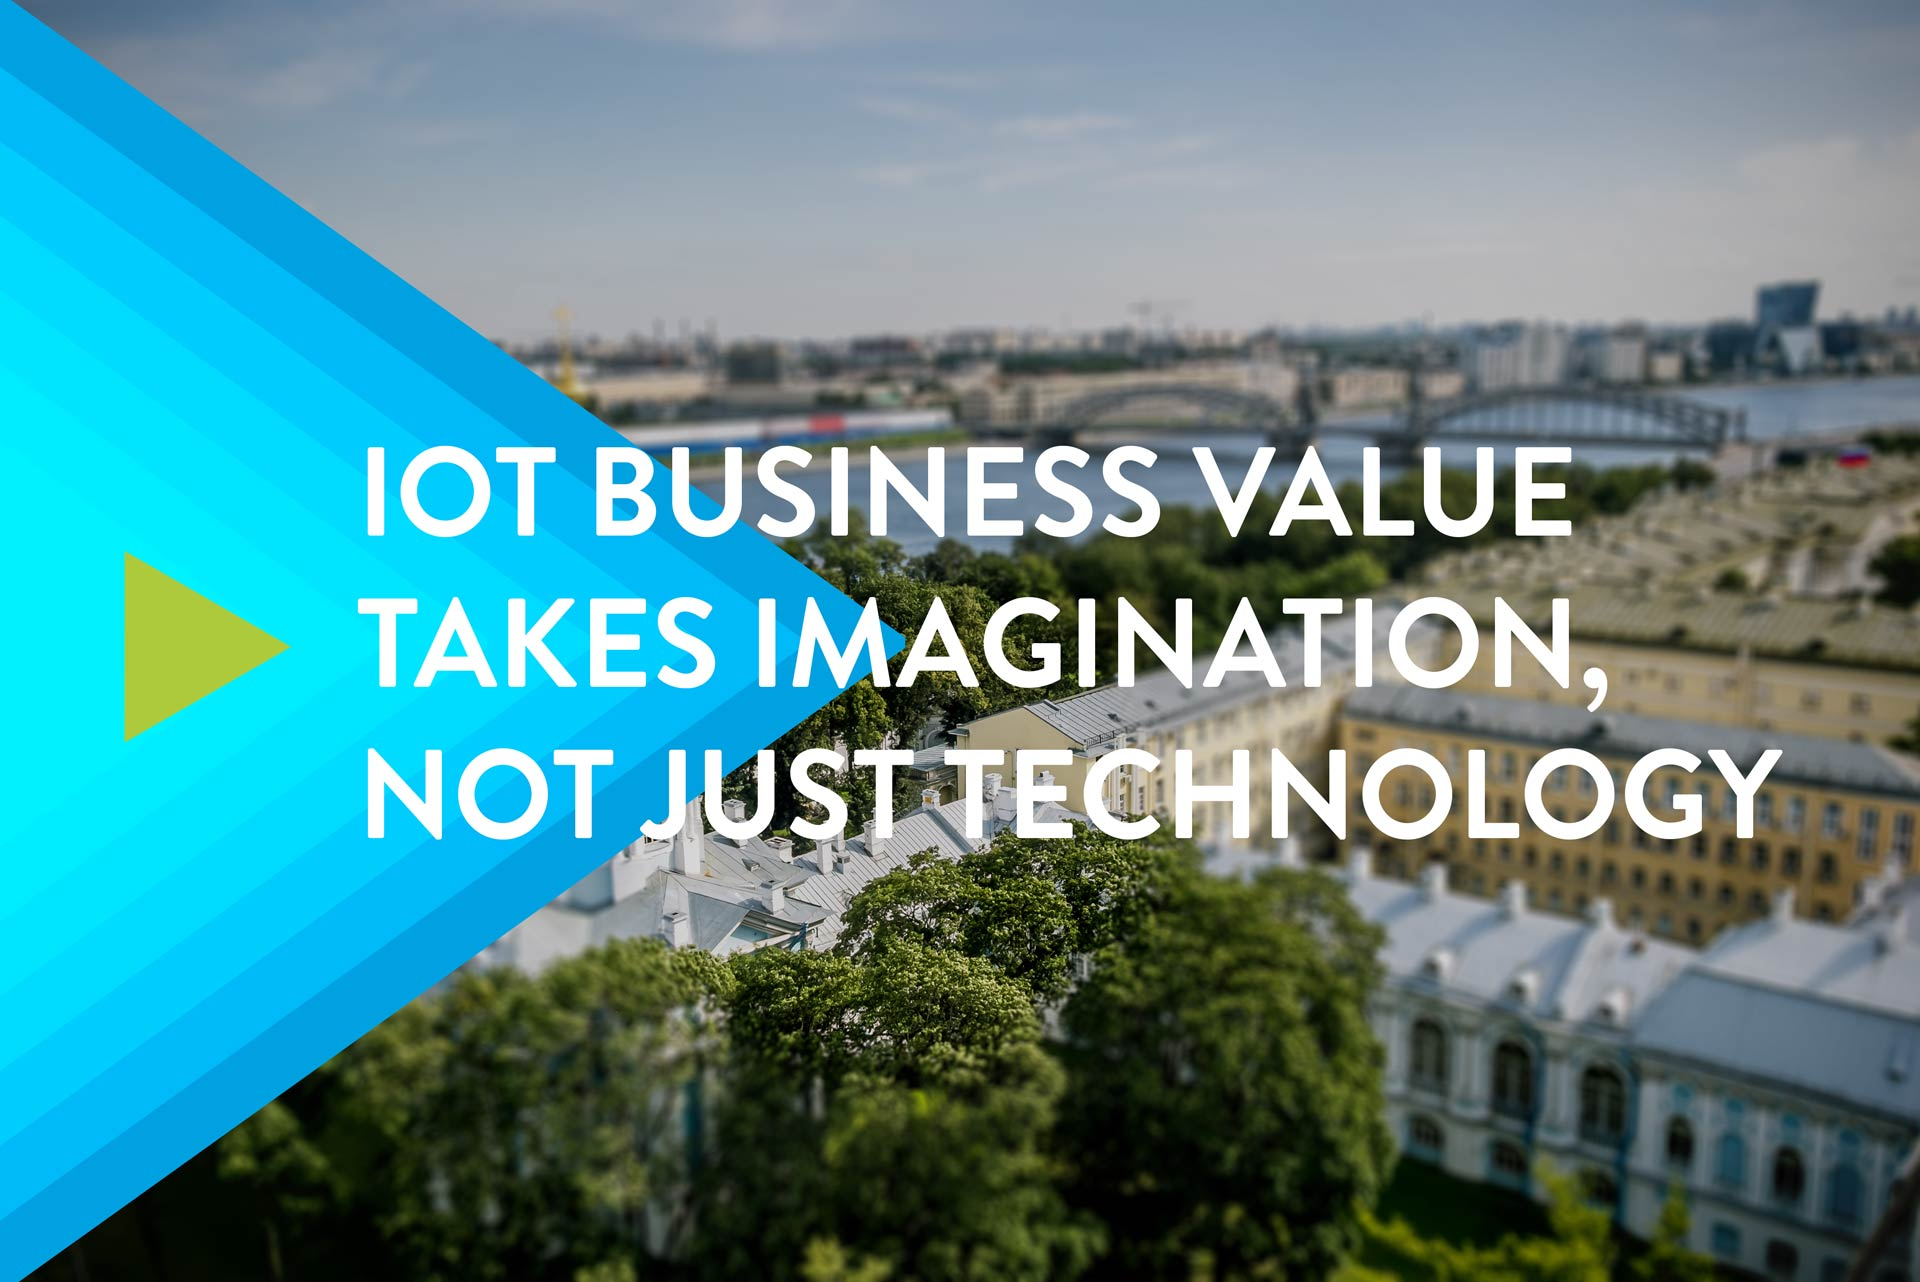 IoT Business Value